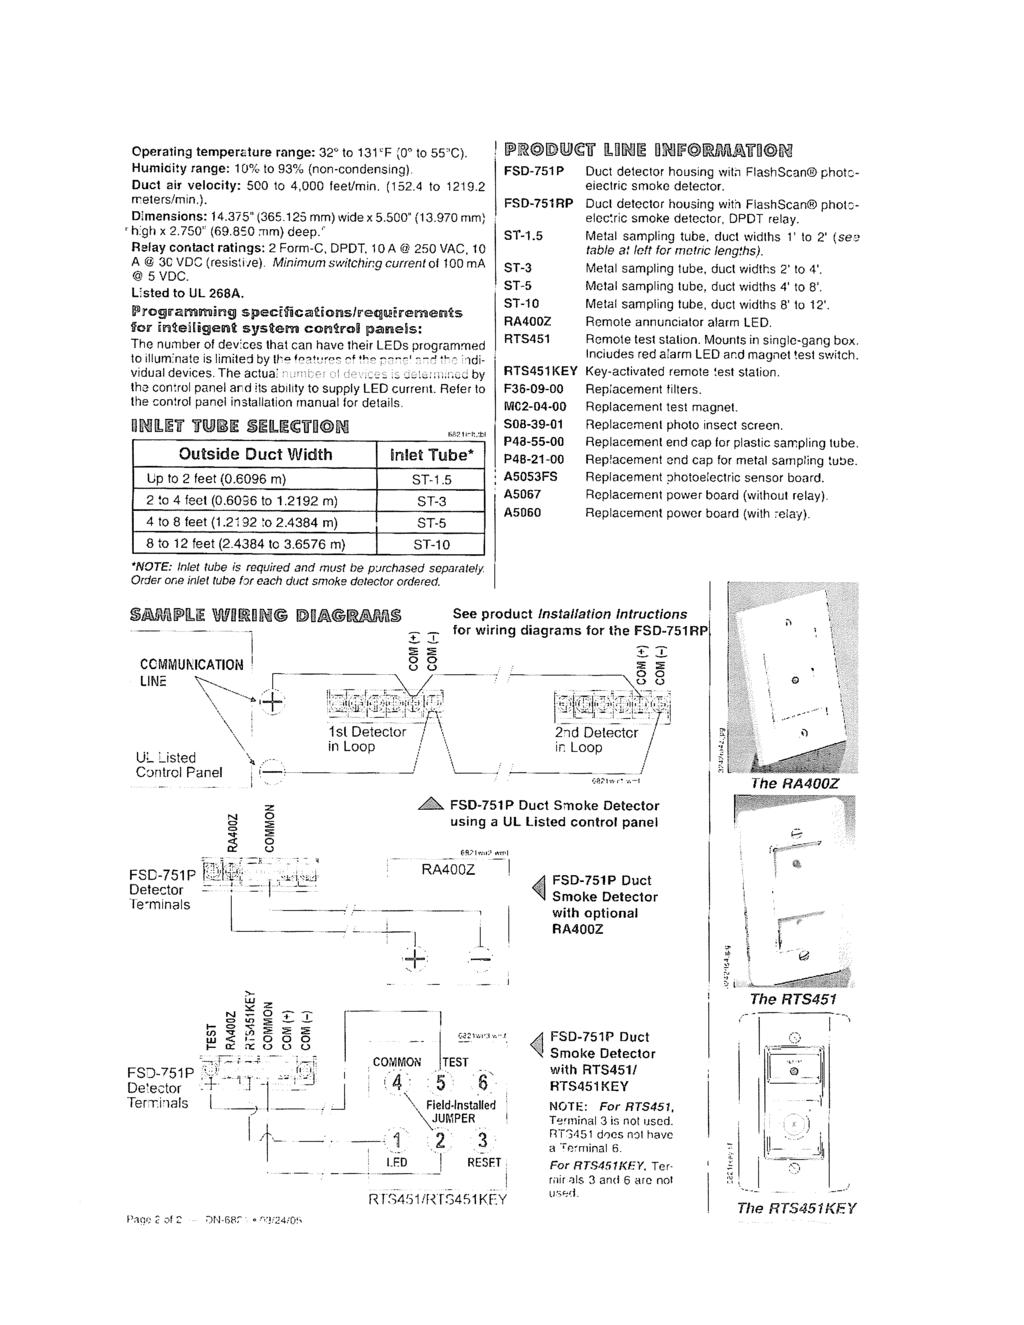 Contract Specifications Pdf Fsl Wiring To A Pir Without Builtin Resistors Operating Temperature Range 32 131f 0 55c